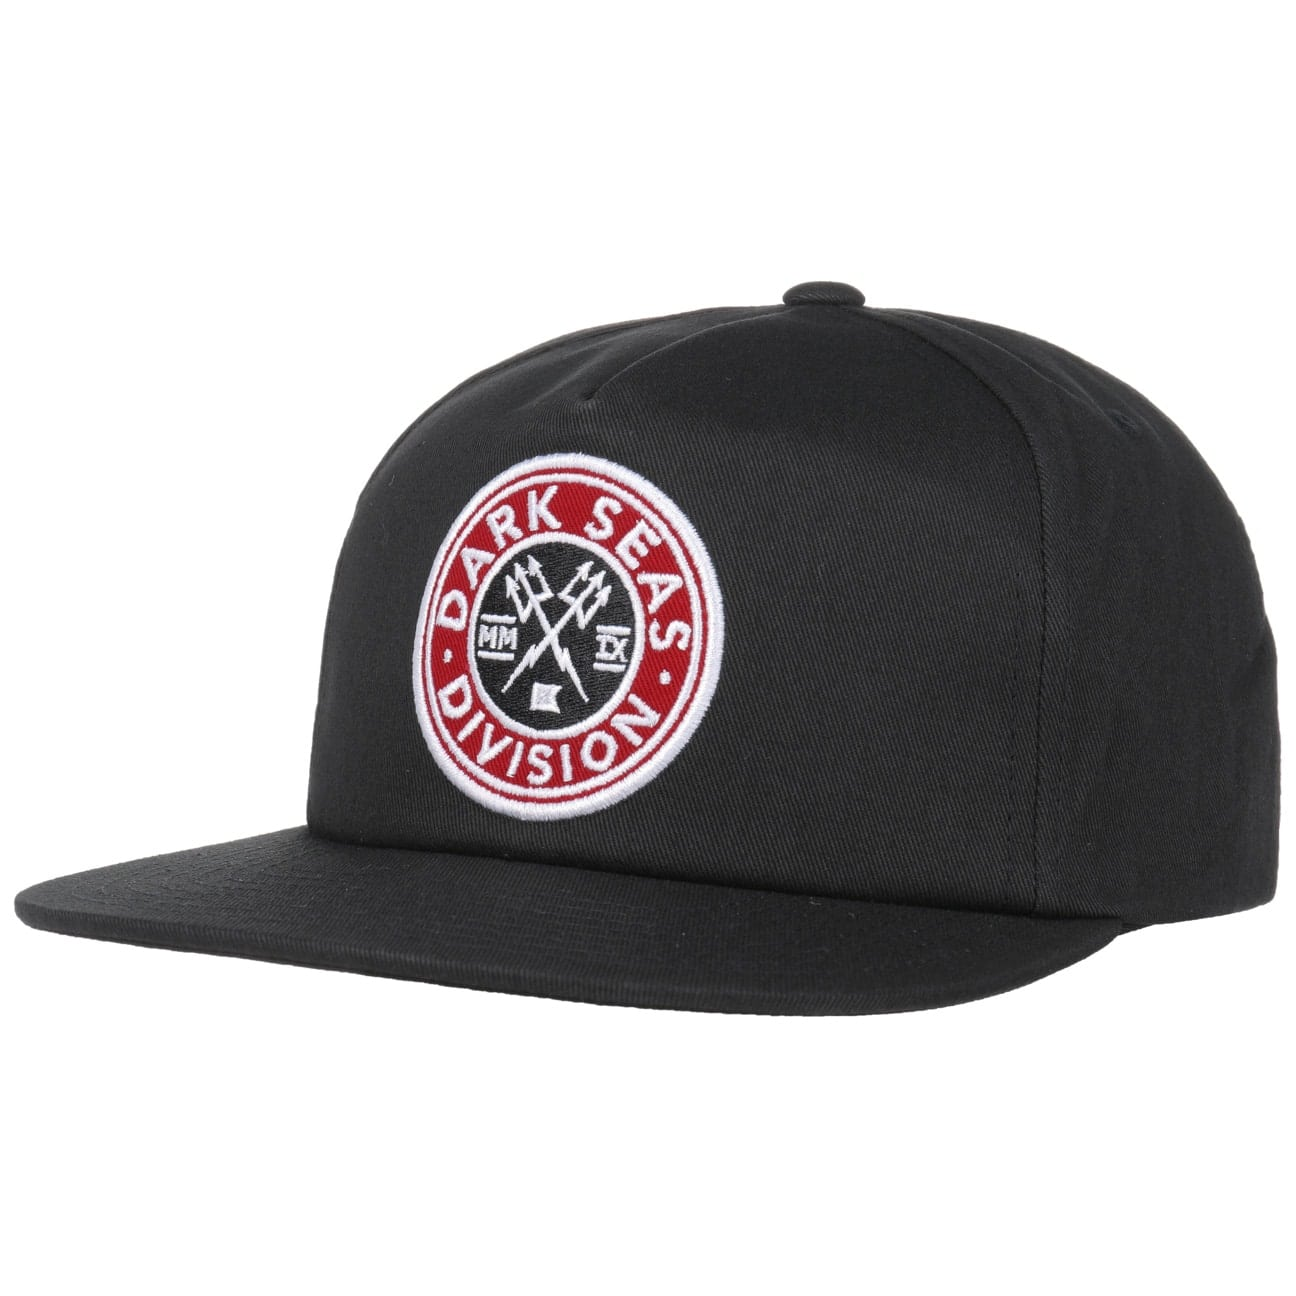 Gorra Journeyman Snapback by Dark Seas  gorra de baseball